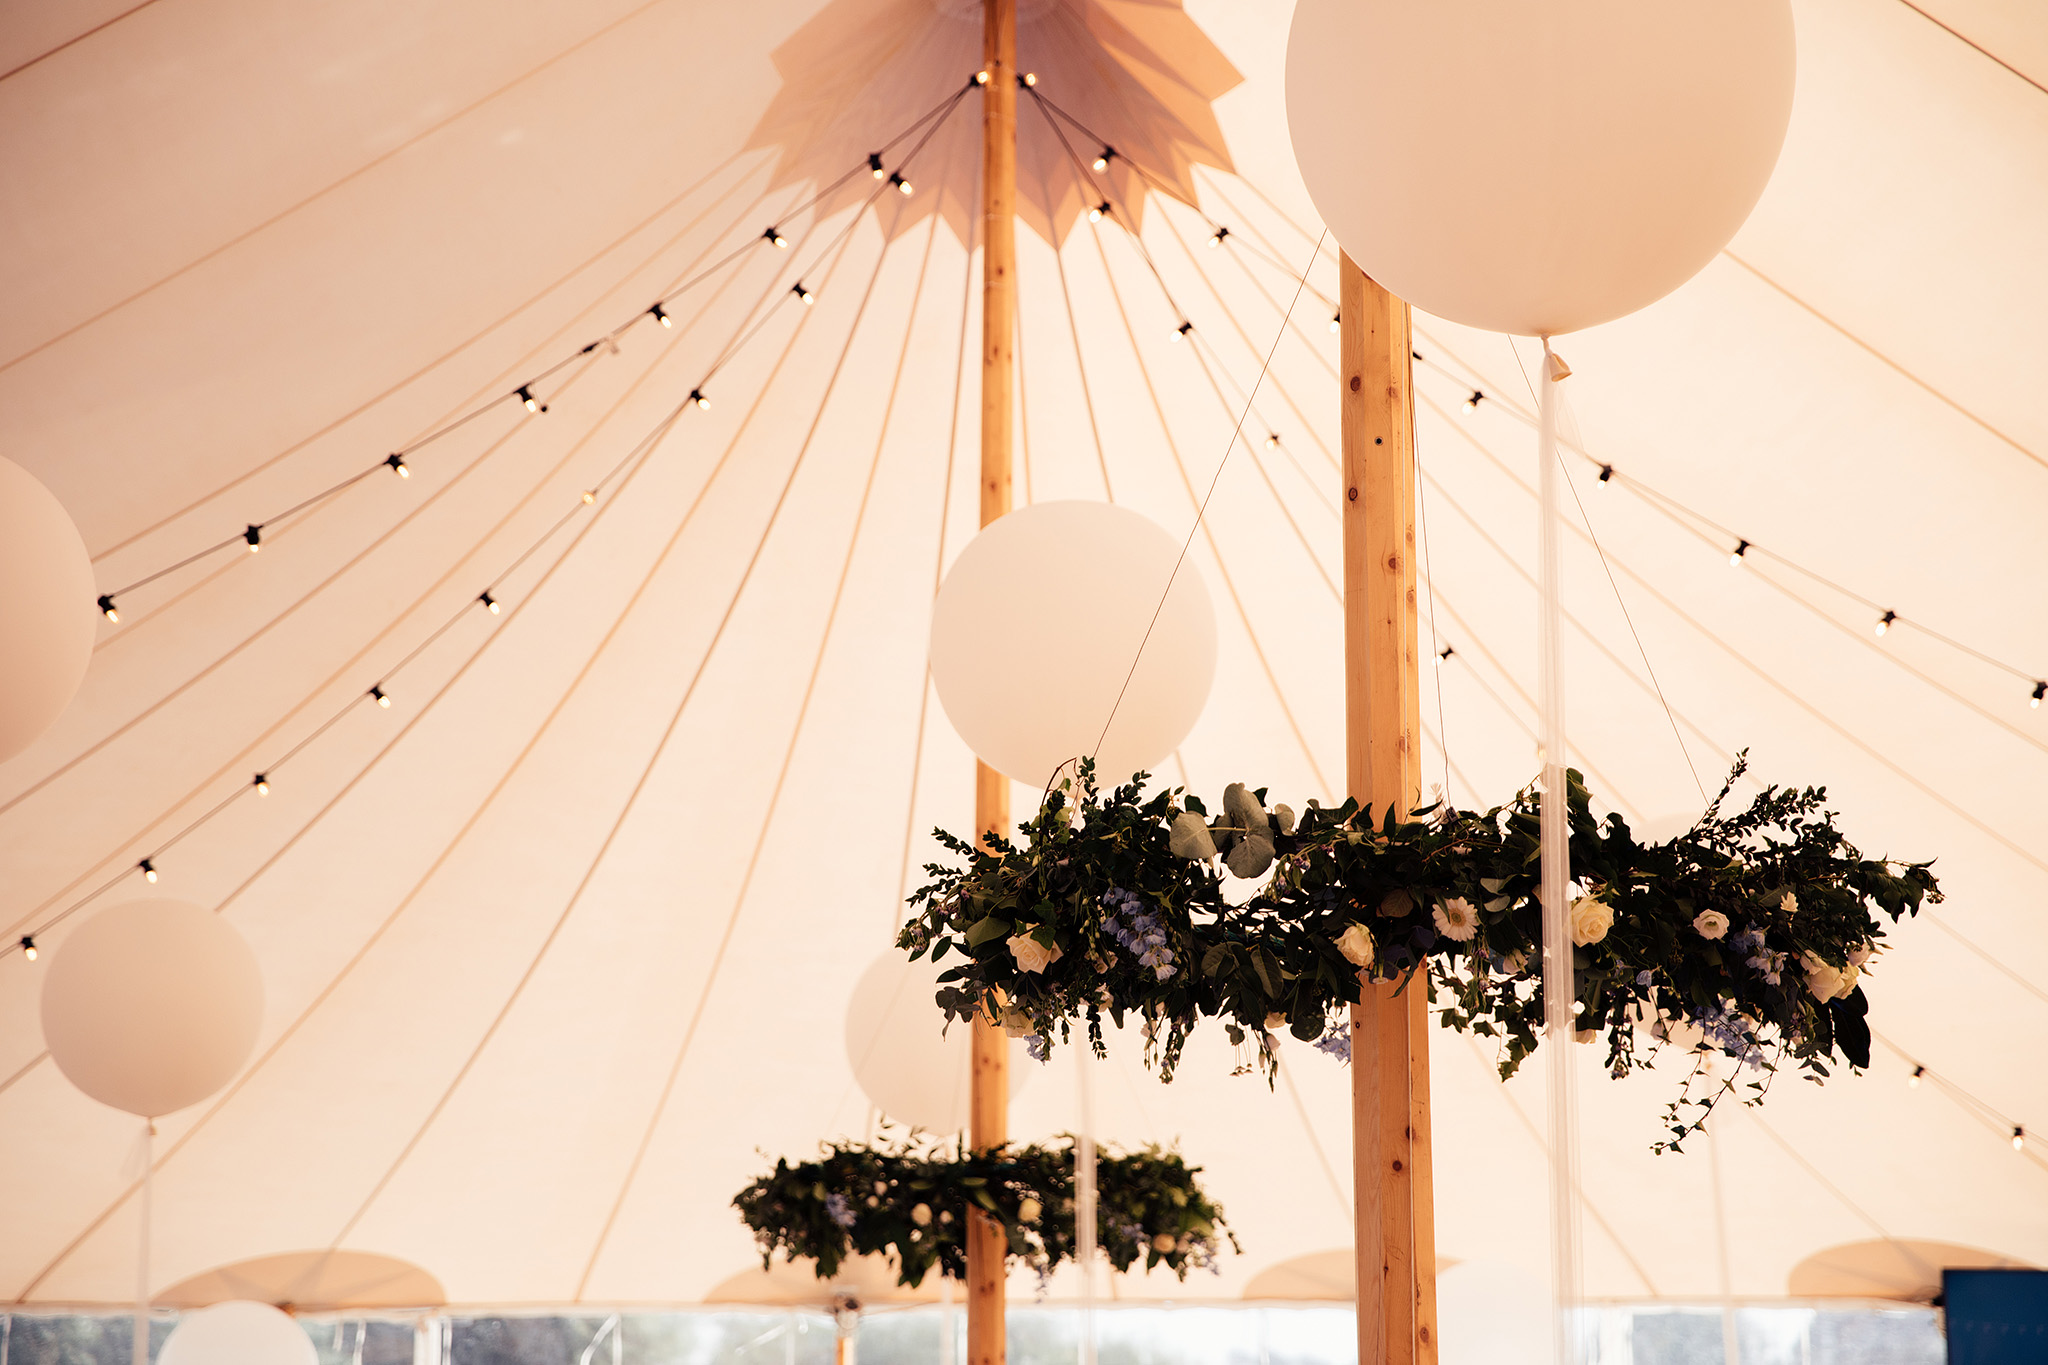 PapaKåta Sperry Wedding in Oxfordshire by Harry Michael Photography- Floral designs by Flower NV